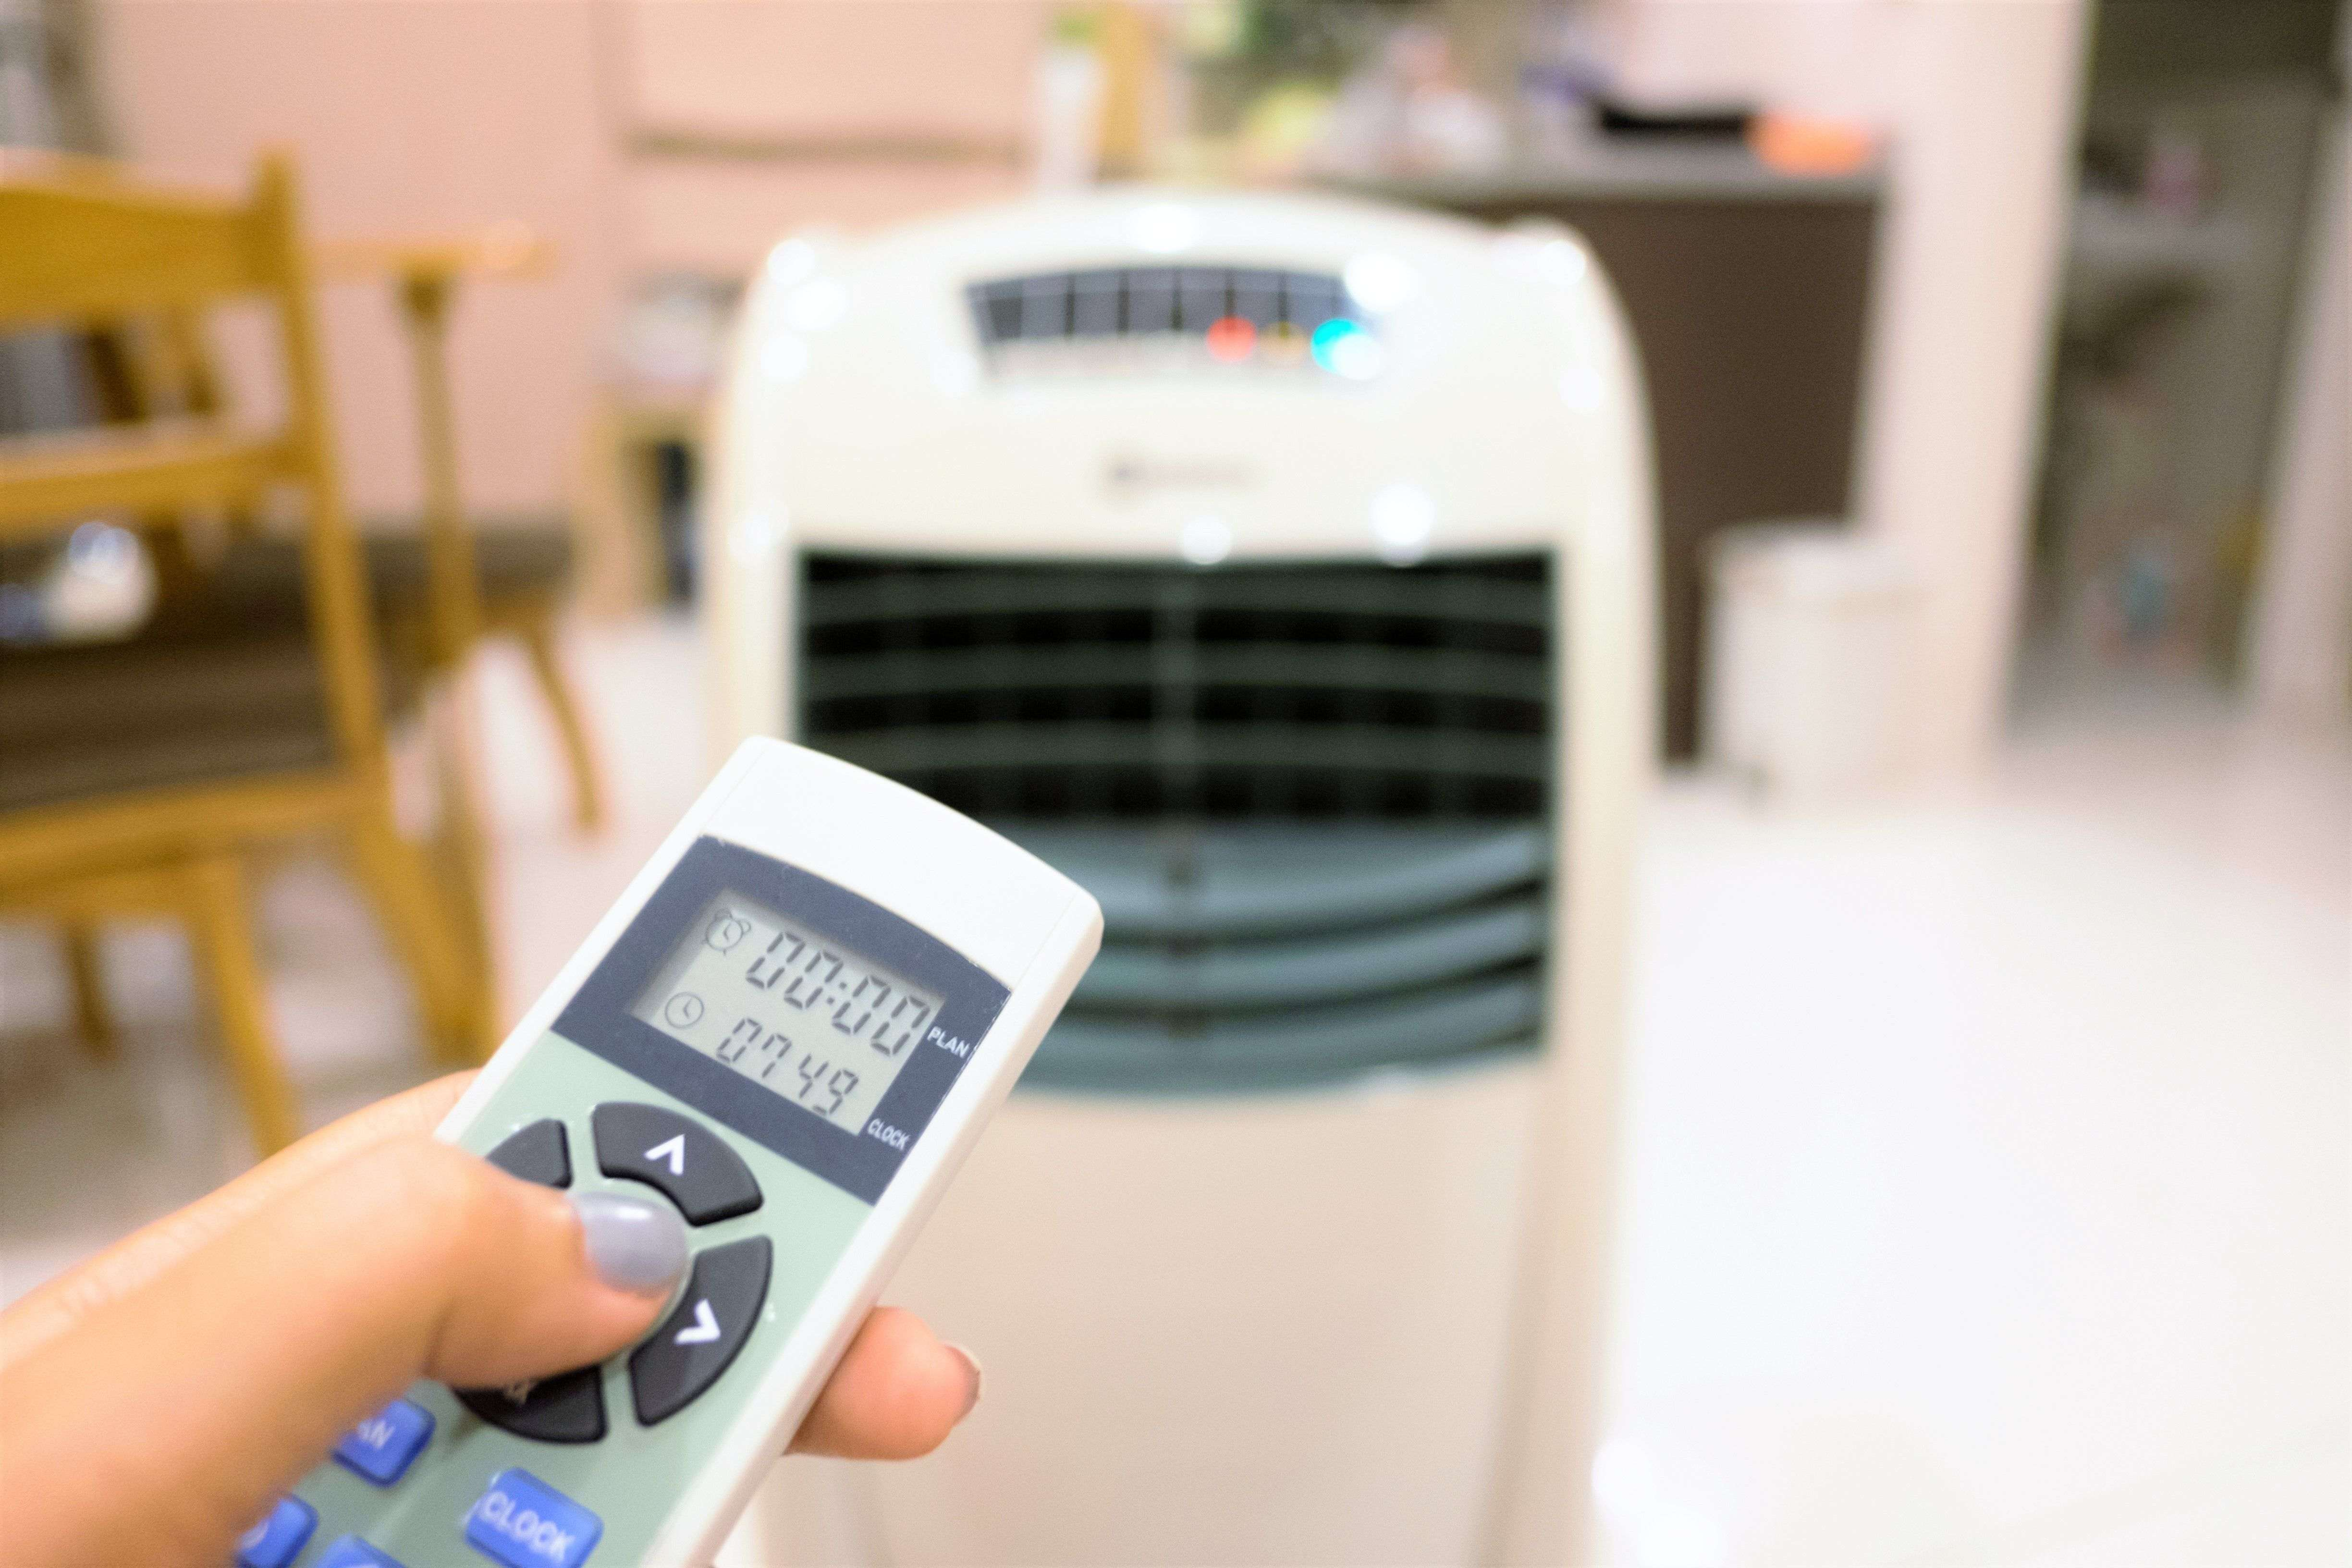 Portable air conditioner or air cooler: which is right for you?